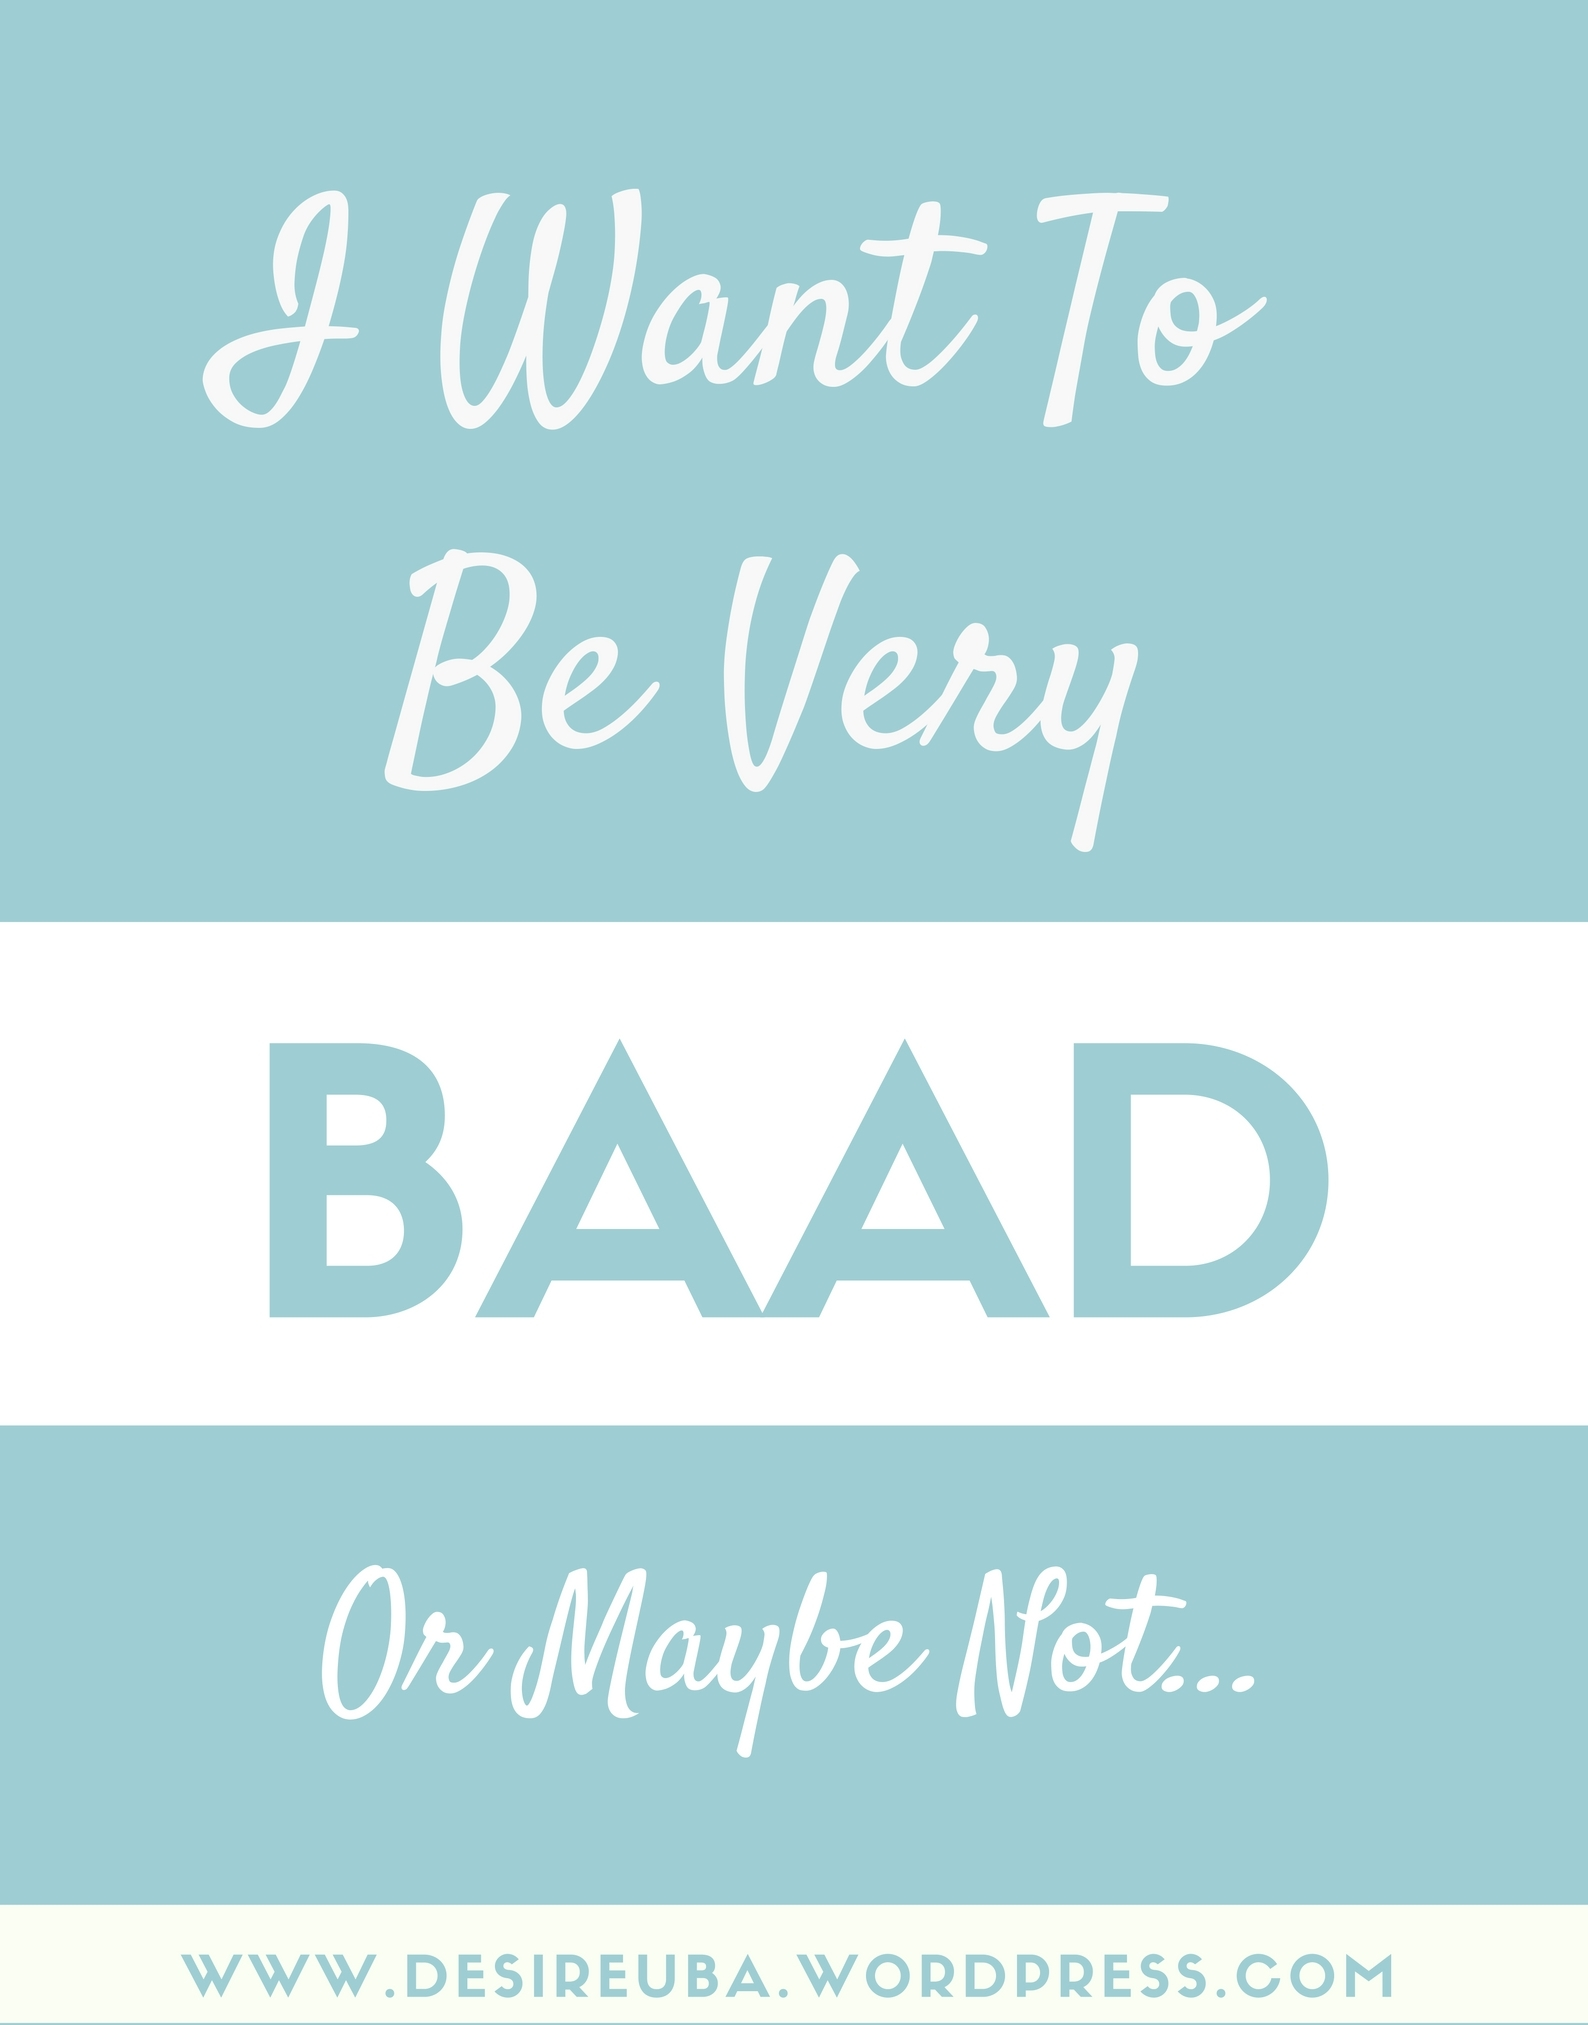 I WANT TO BE VERY BAAD… OR MAYBE NOT?